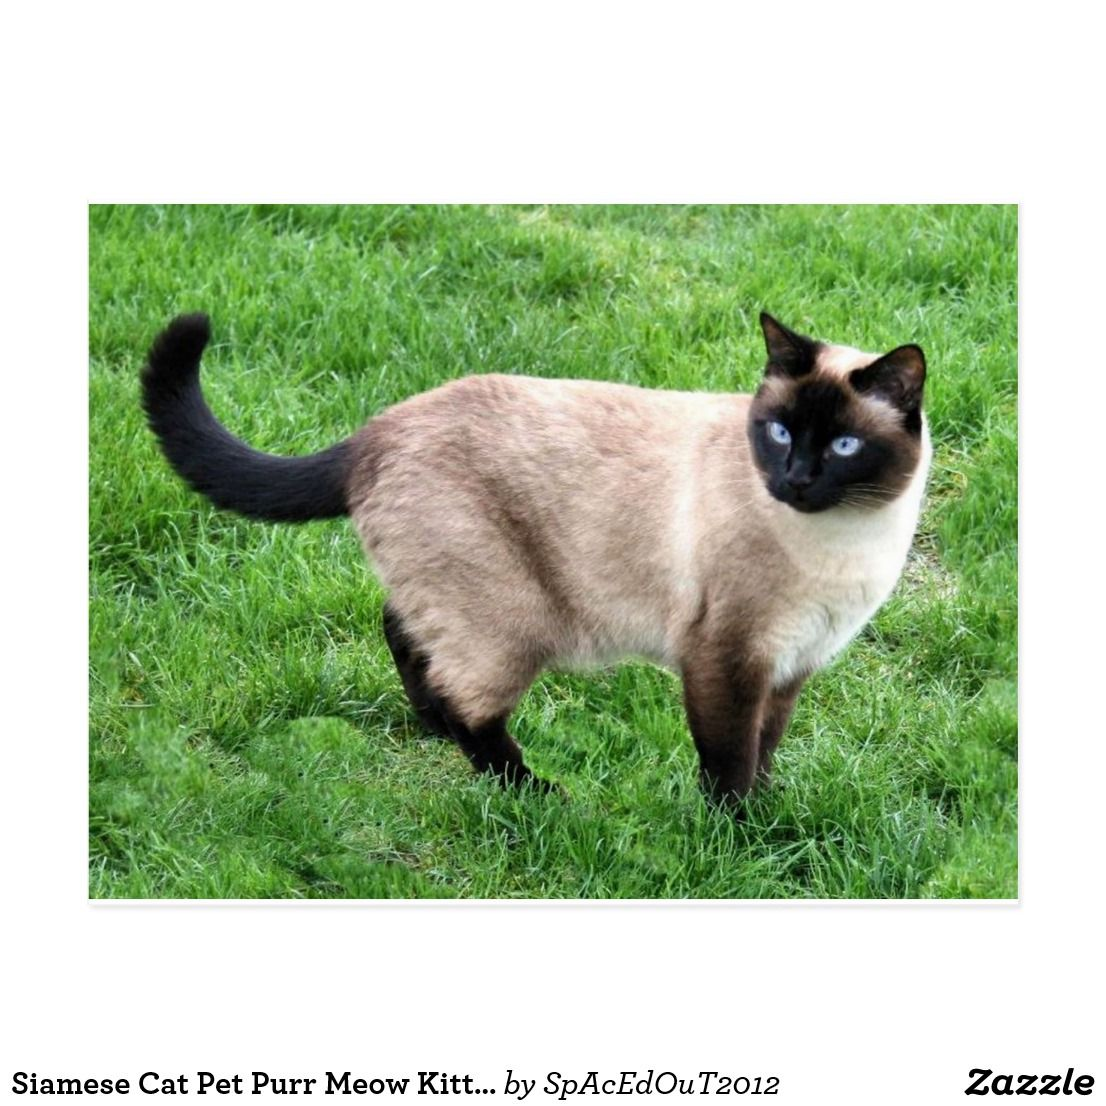 Siamese Cat Pet Purr Meow Kitty Destiny Art Postcard Zazzle Com Siamese Cats Blue Point Siamese Cats Pets Cats